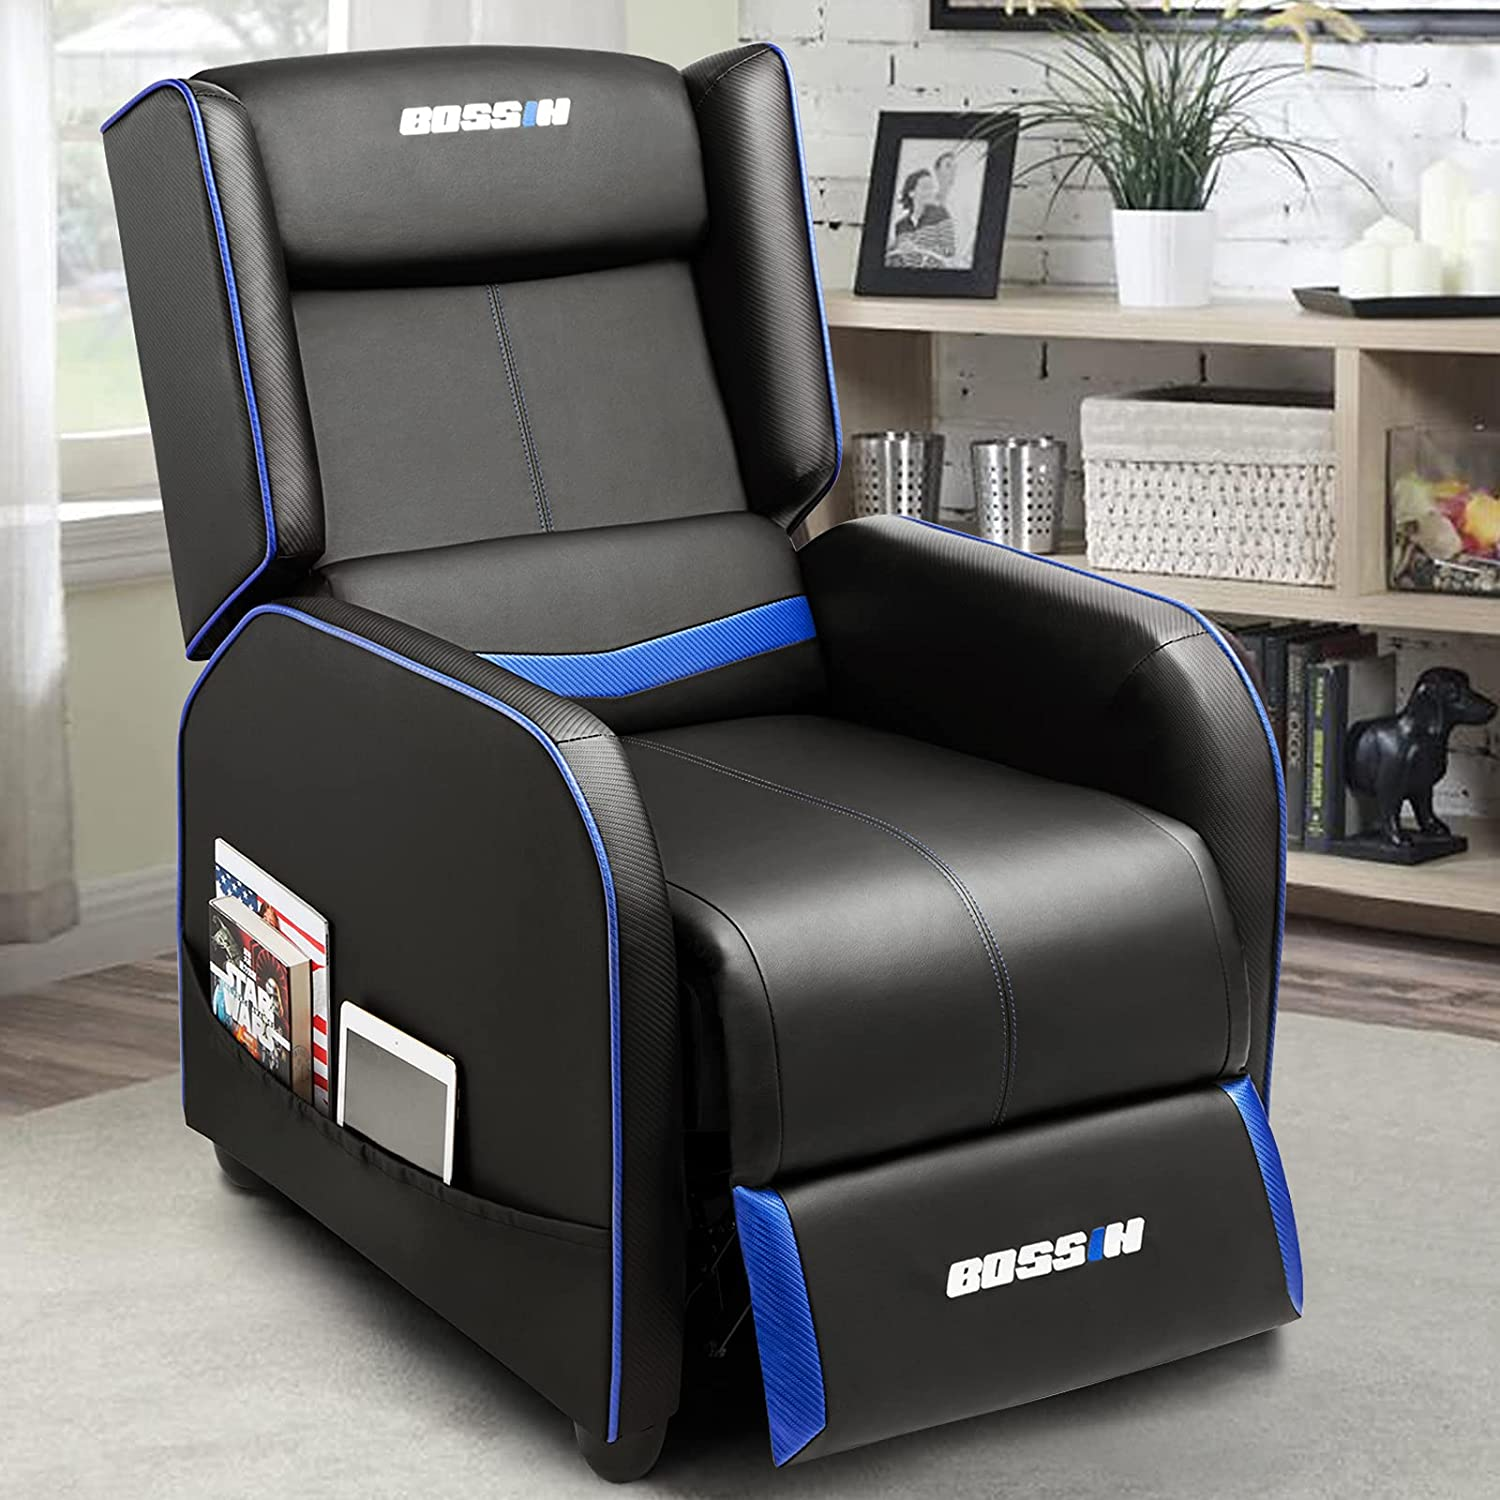 BOSSIN latest Austin Mall Gaming Recliner Chair Single Sofa Rec PU Leather